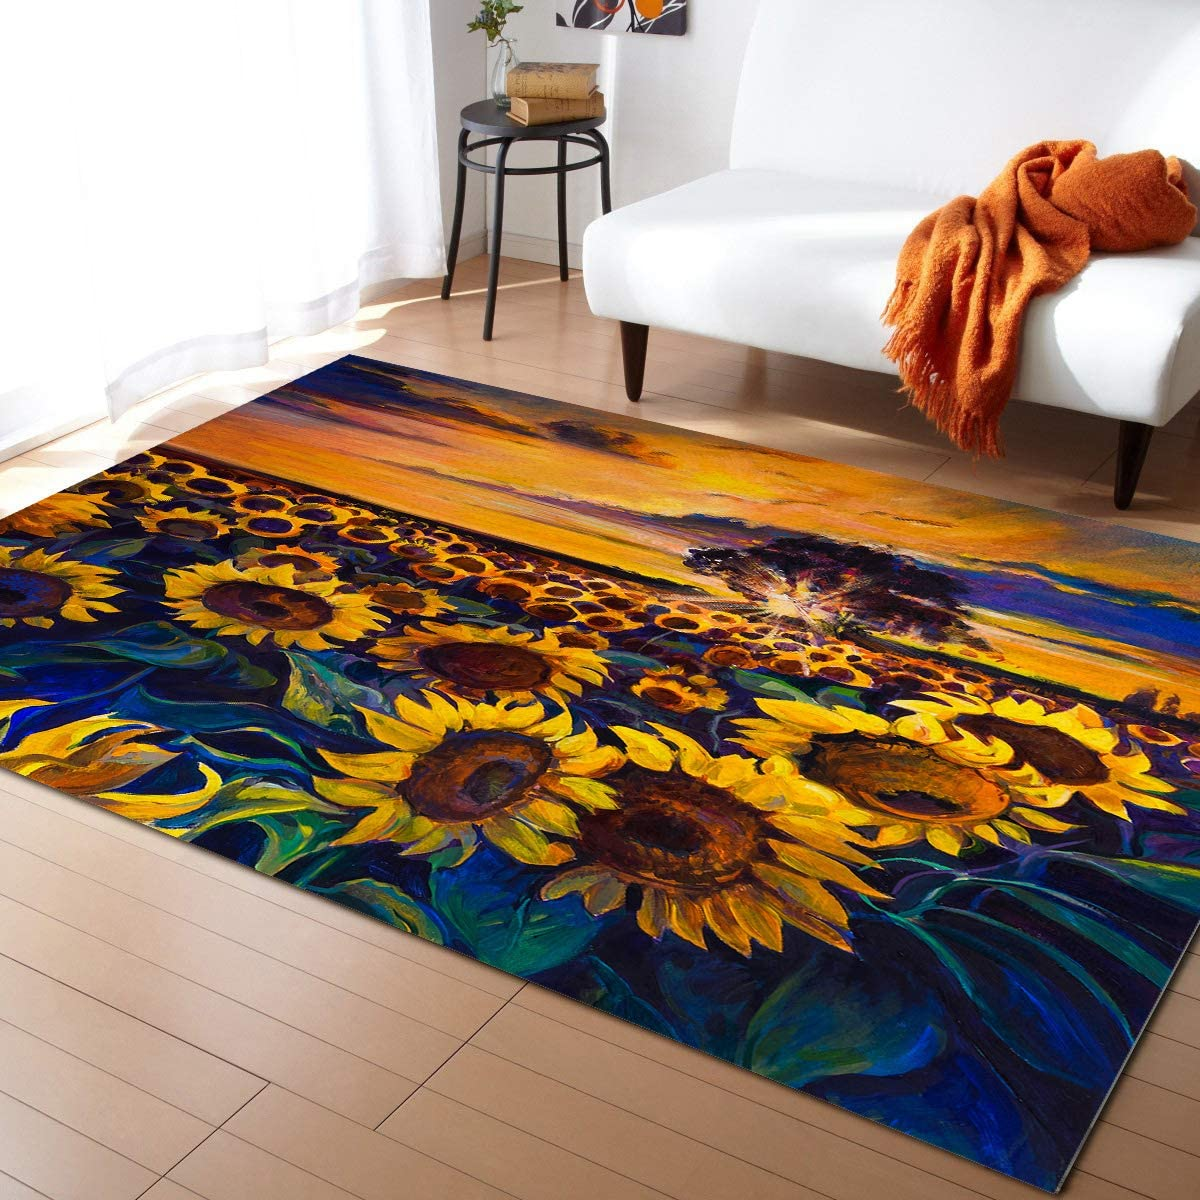 Large Area Rug for Living Room- Sunflower Blooming on The Edge of The City Soft Comfort Carpet Home Decorate Contemporary Runner Rugs, 4' x 6'